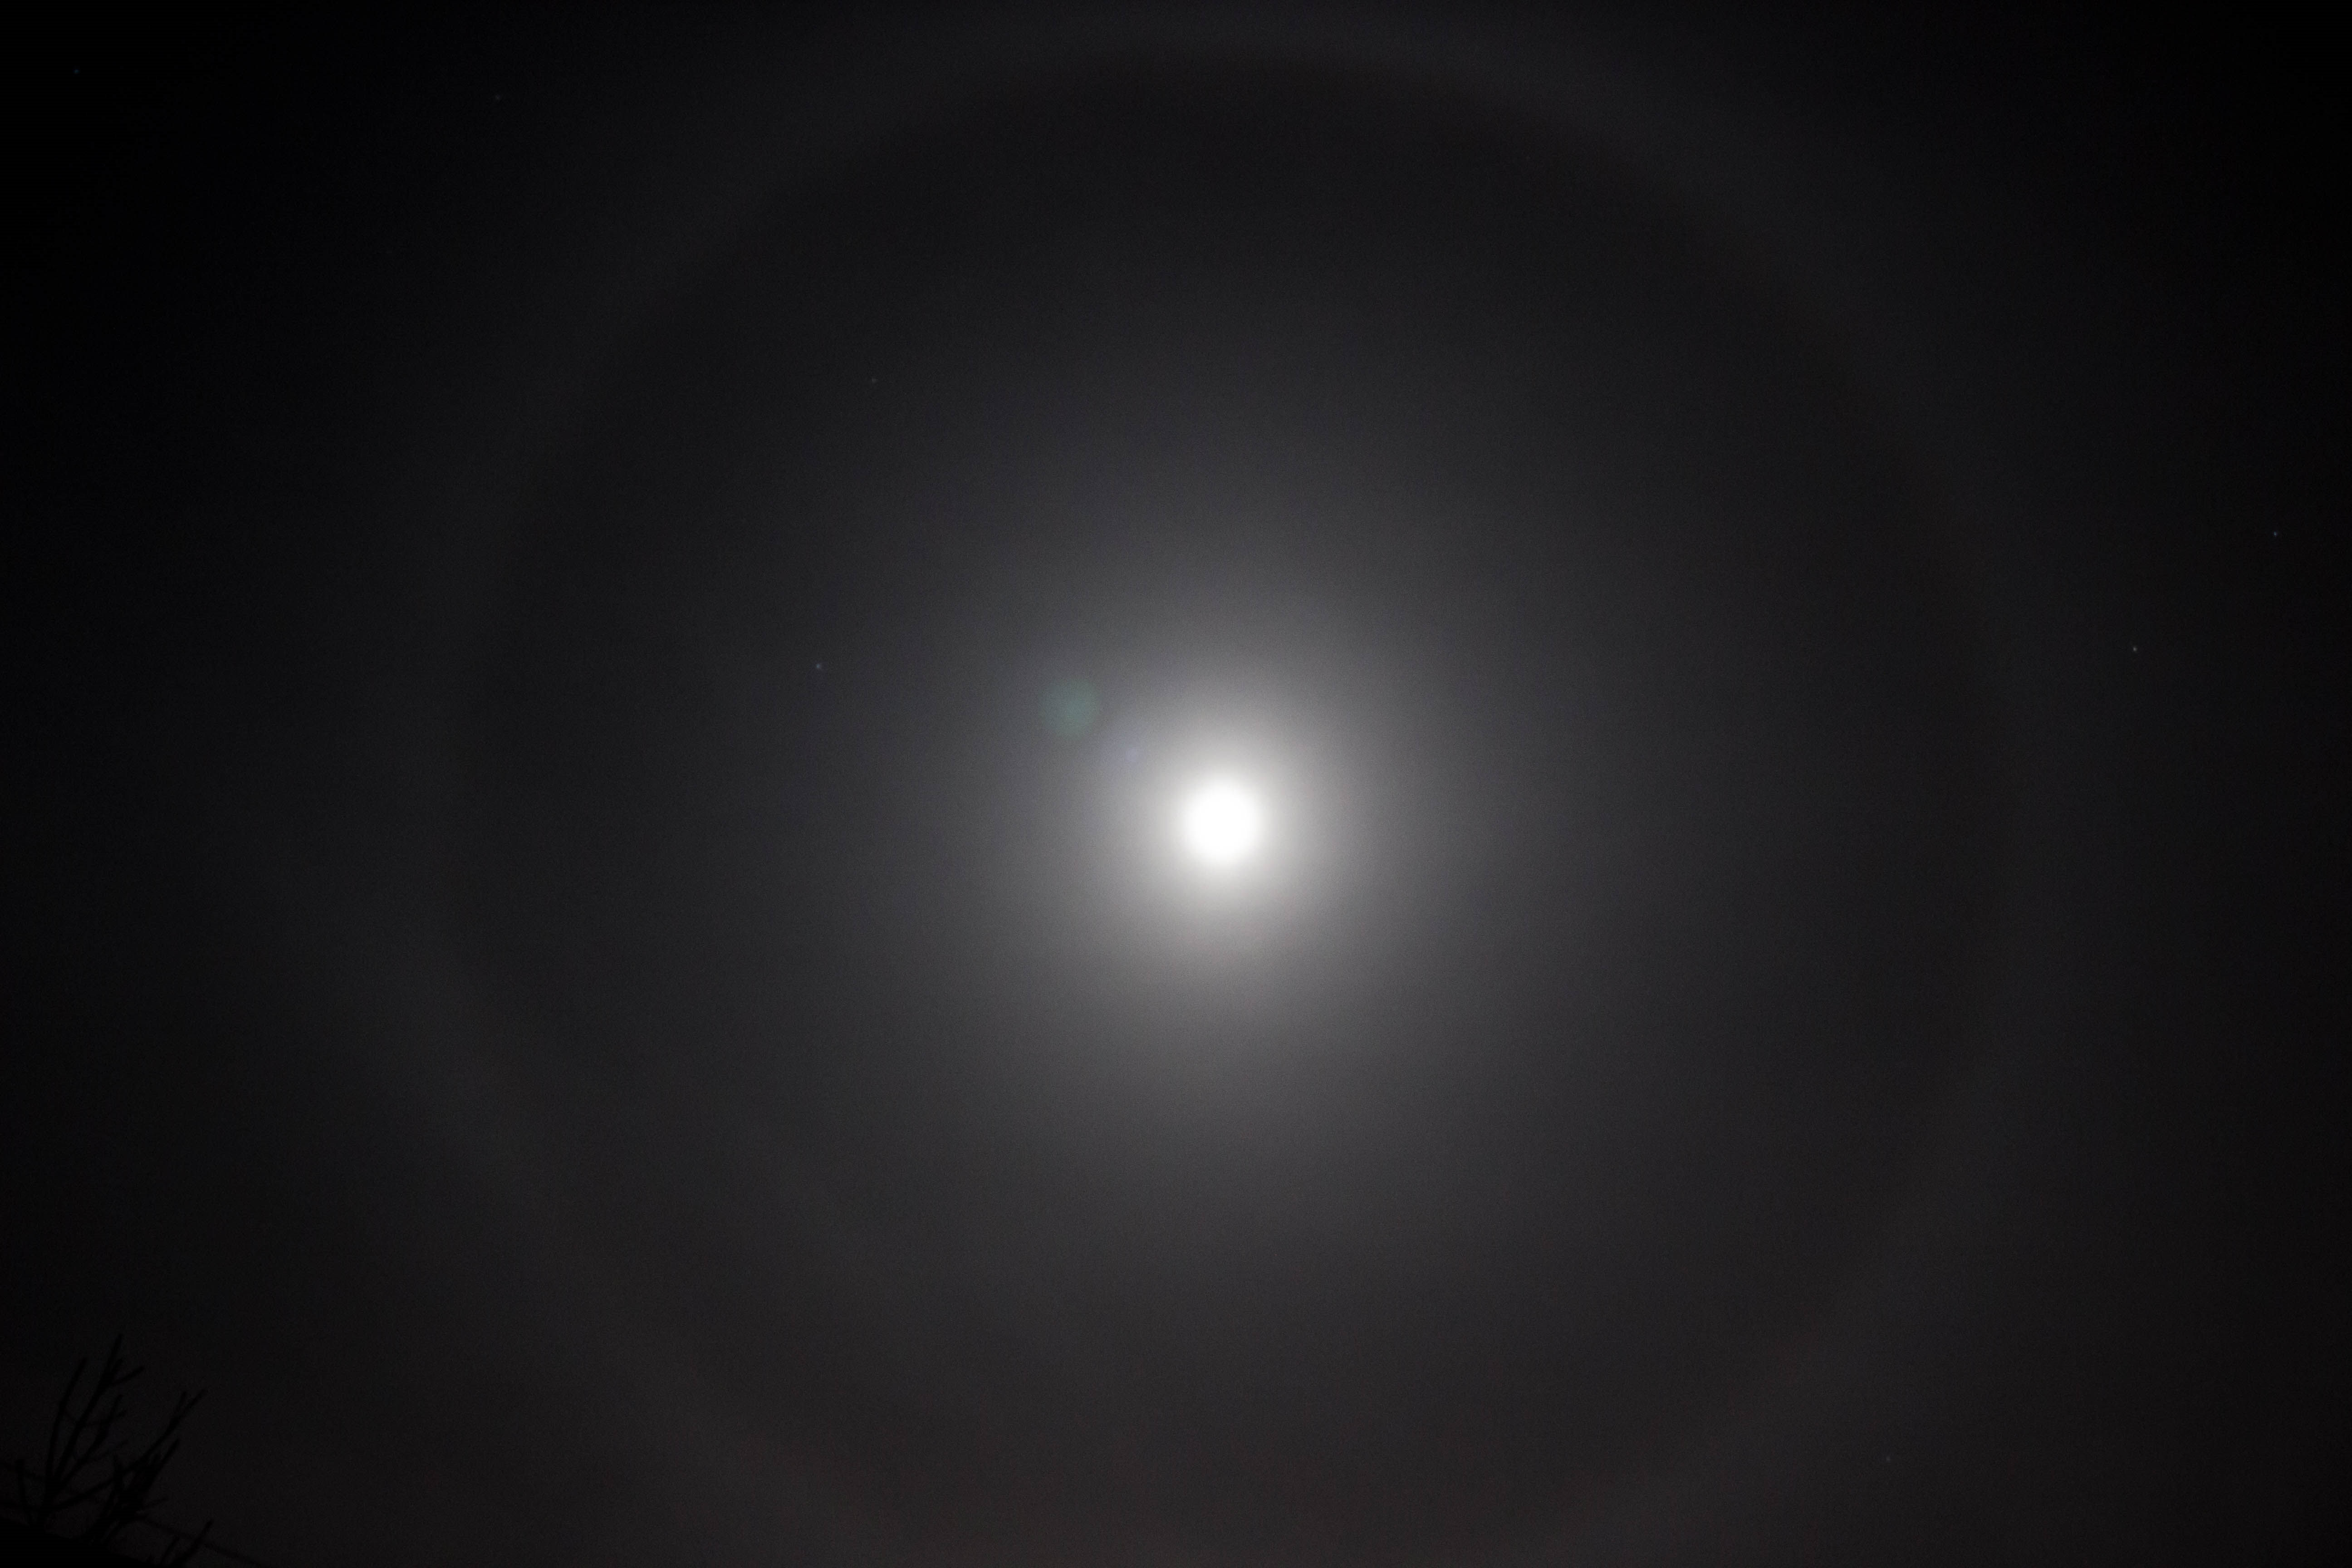 Lunar Halo by Andy Heenan. 10.02.17  00.26. Canon EOS 600d f/5.6 - ISO800 Exposure 2seconds focal length 18mm Adobe Photoshop Lightroom enhanced